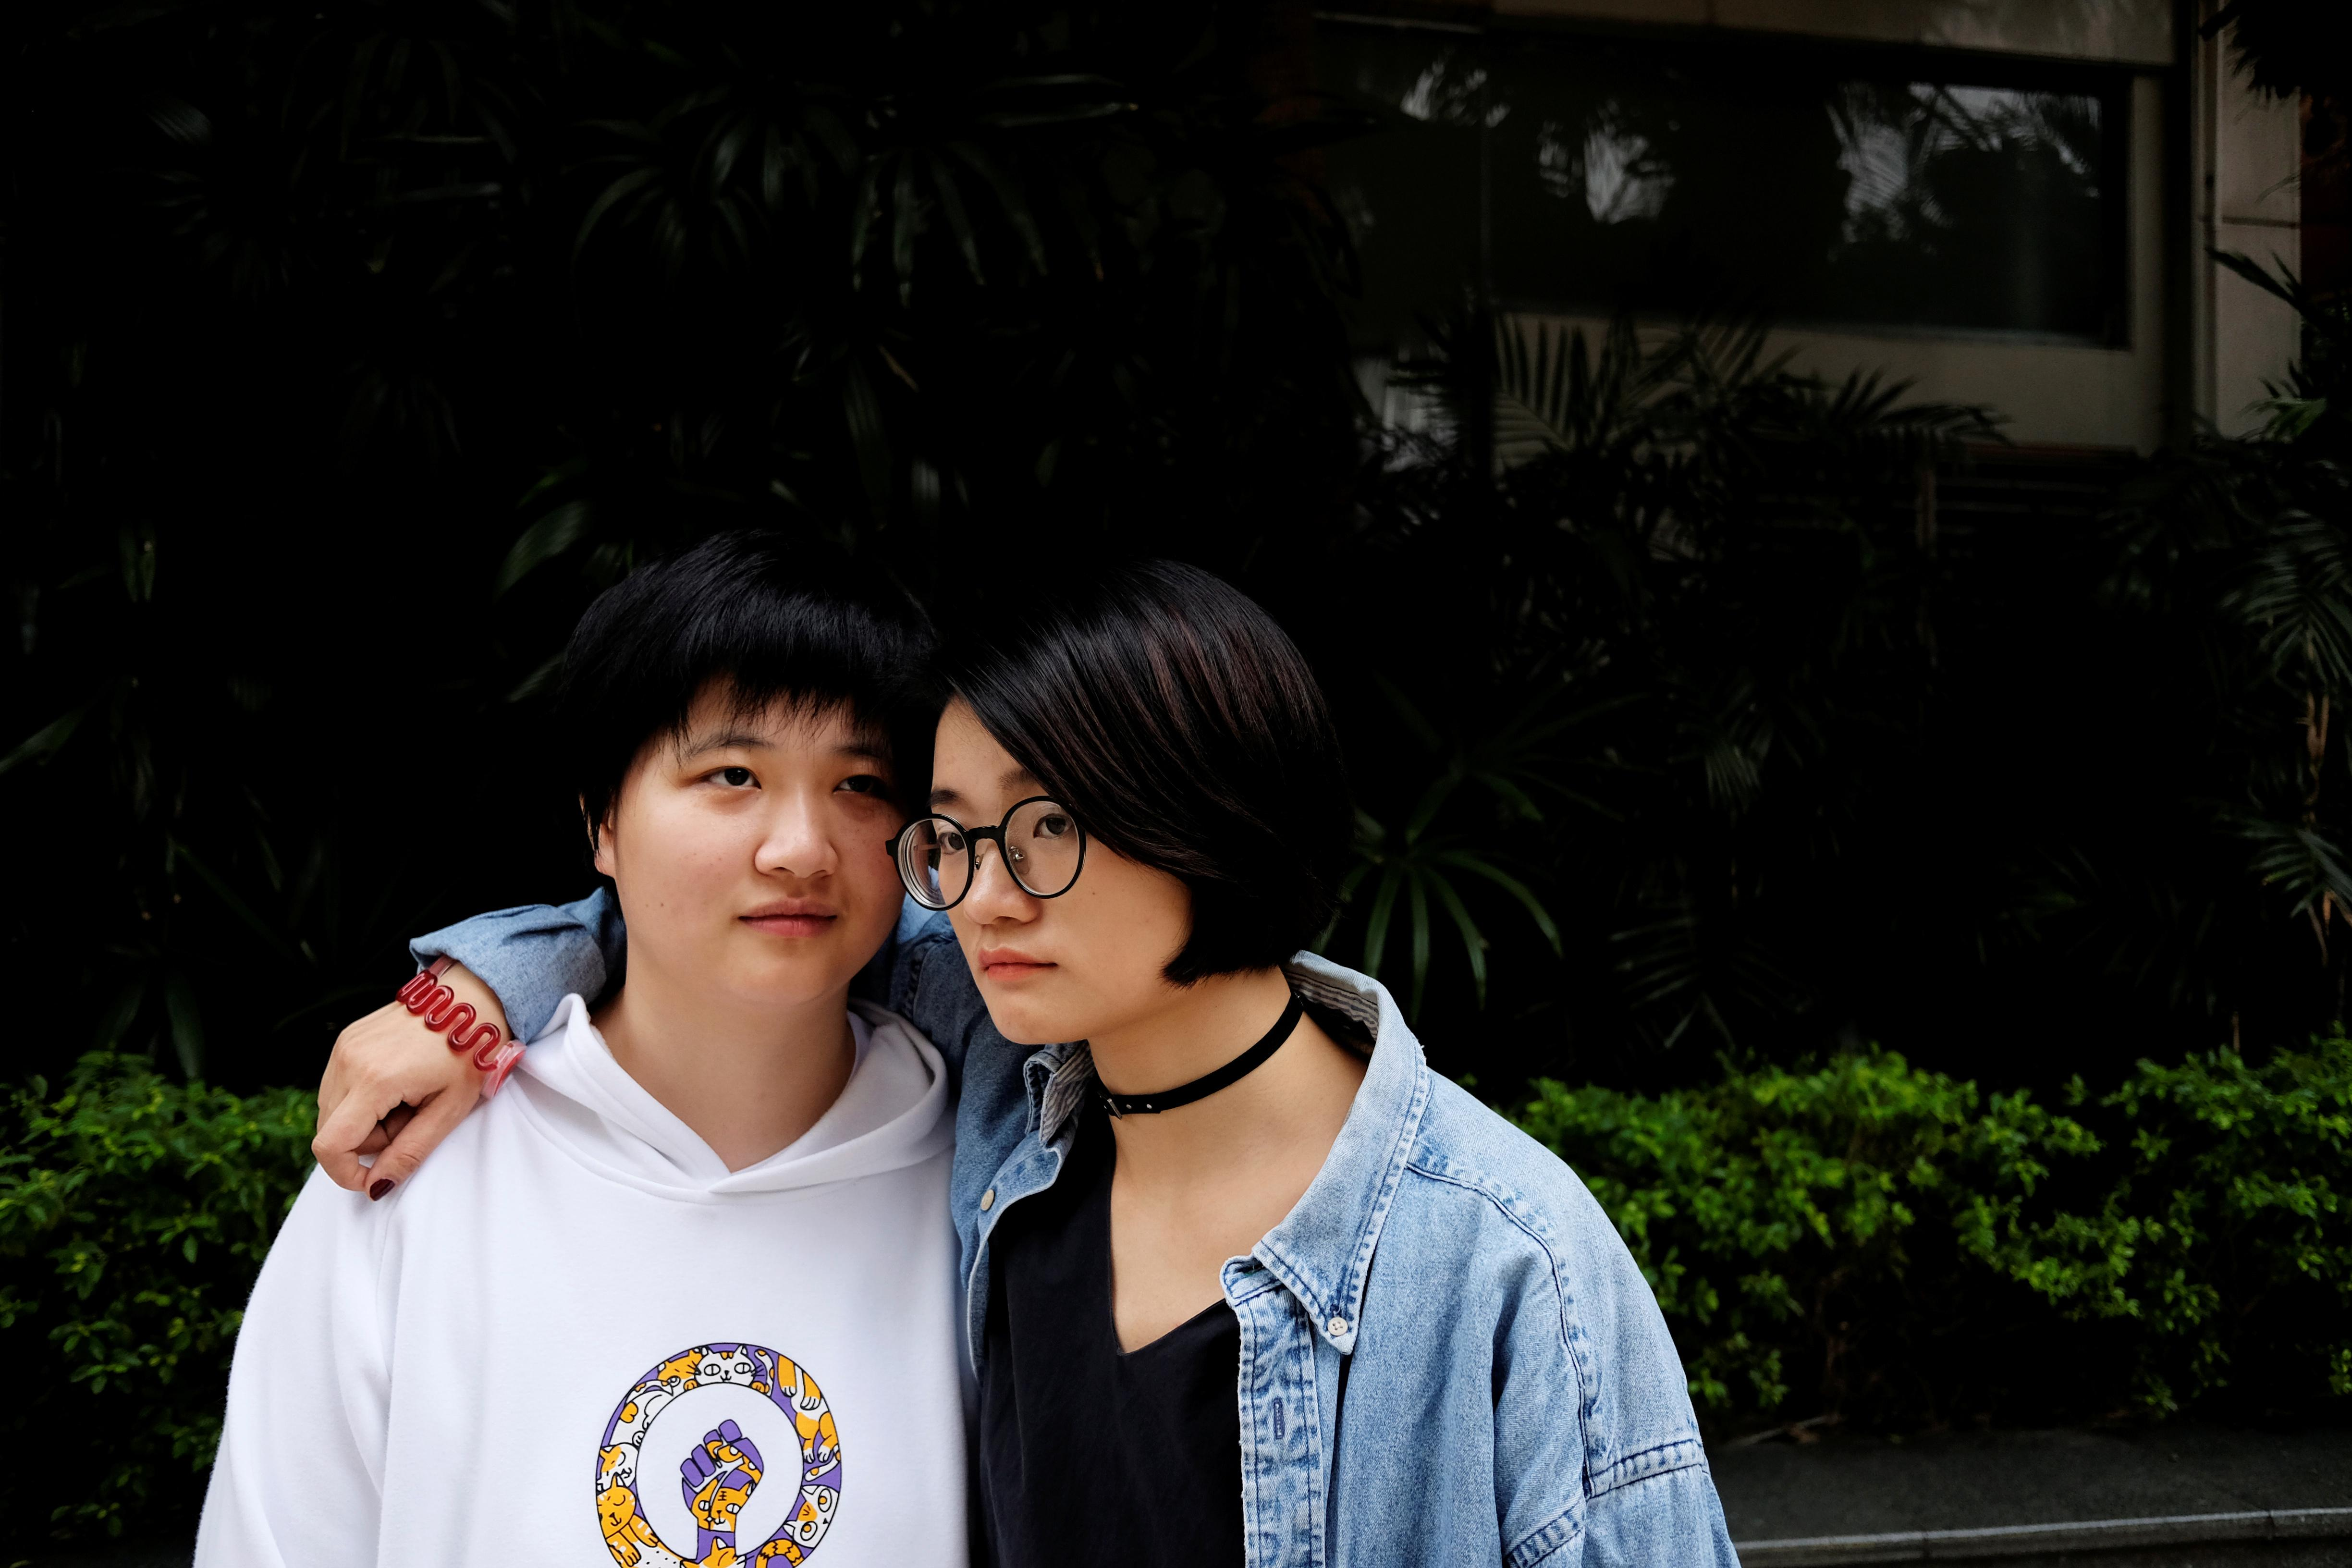 Zhang Leilei (L), 25 and Xiao Meili, 28, Chinese women's rights activists, have called on Chinese universities to prevent sexual harassment. Guangzhou, Jan. 25, 2018. Staff